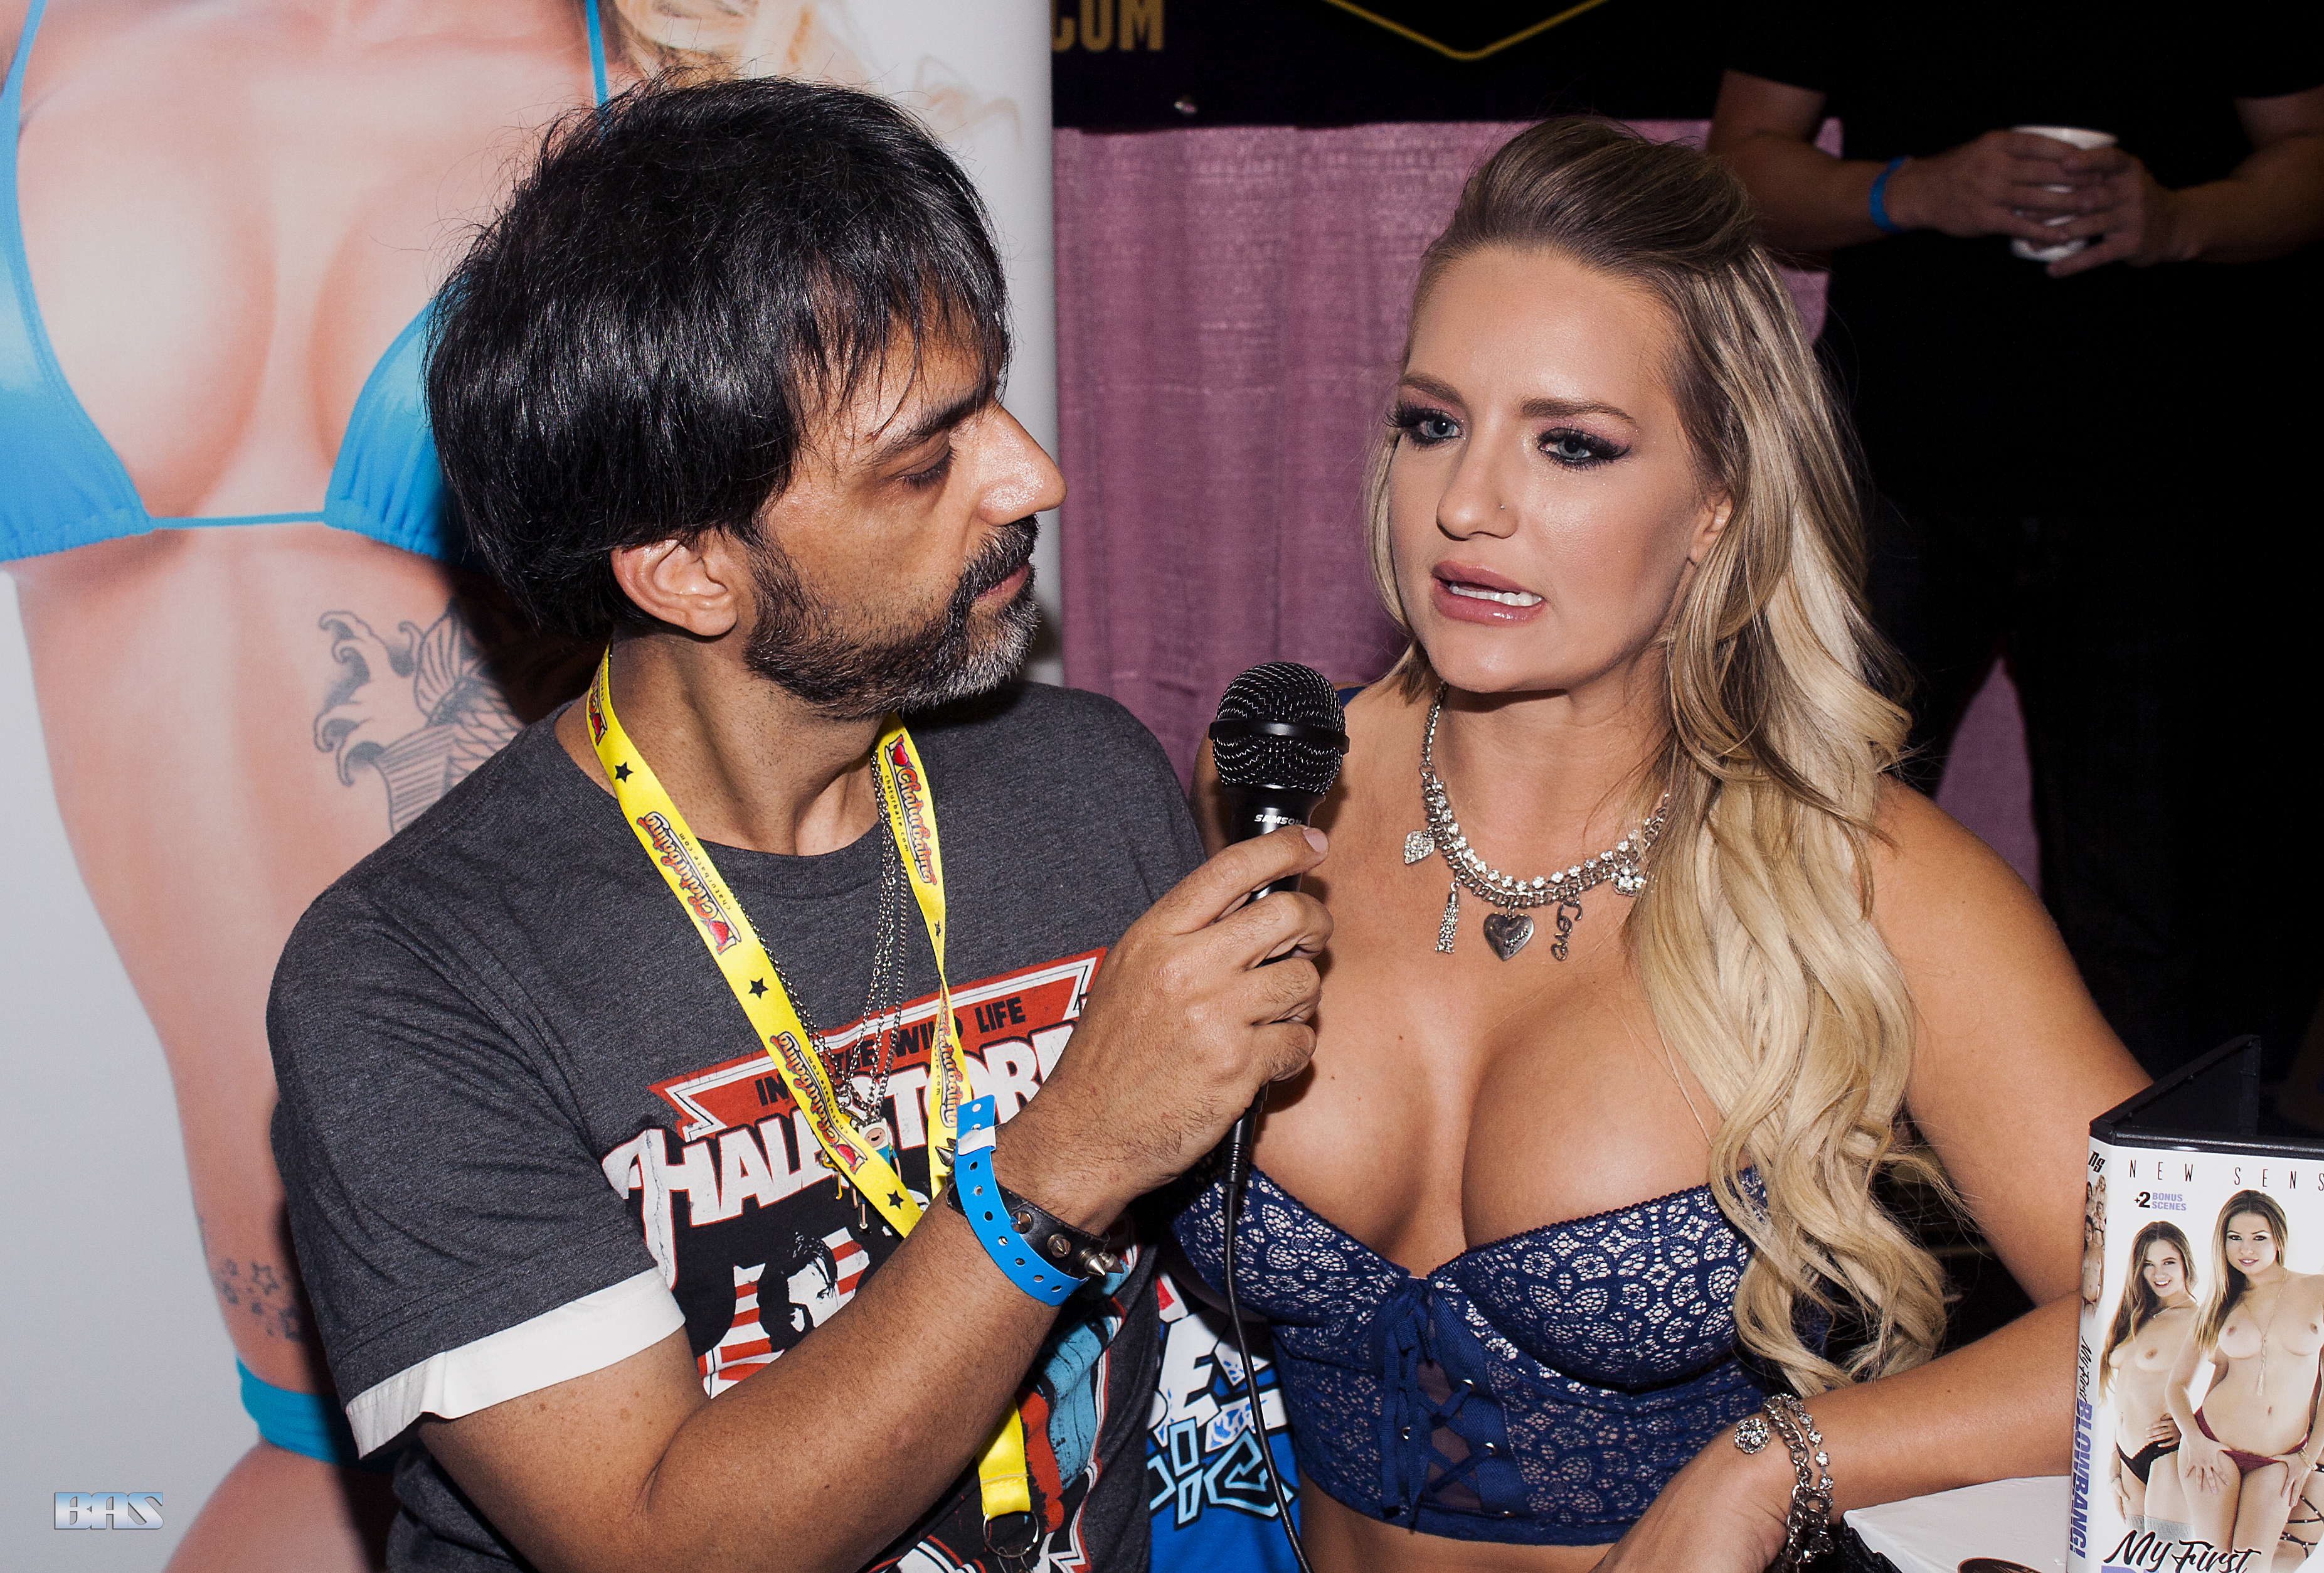 file:cali carter and master gio at exxxotica new jersey 2016